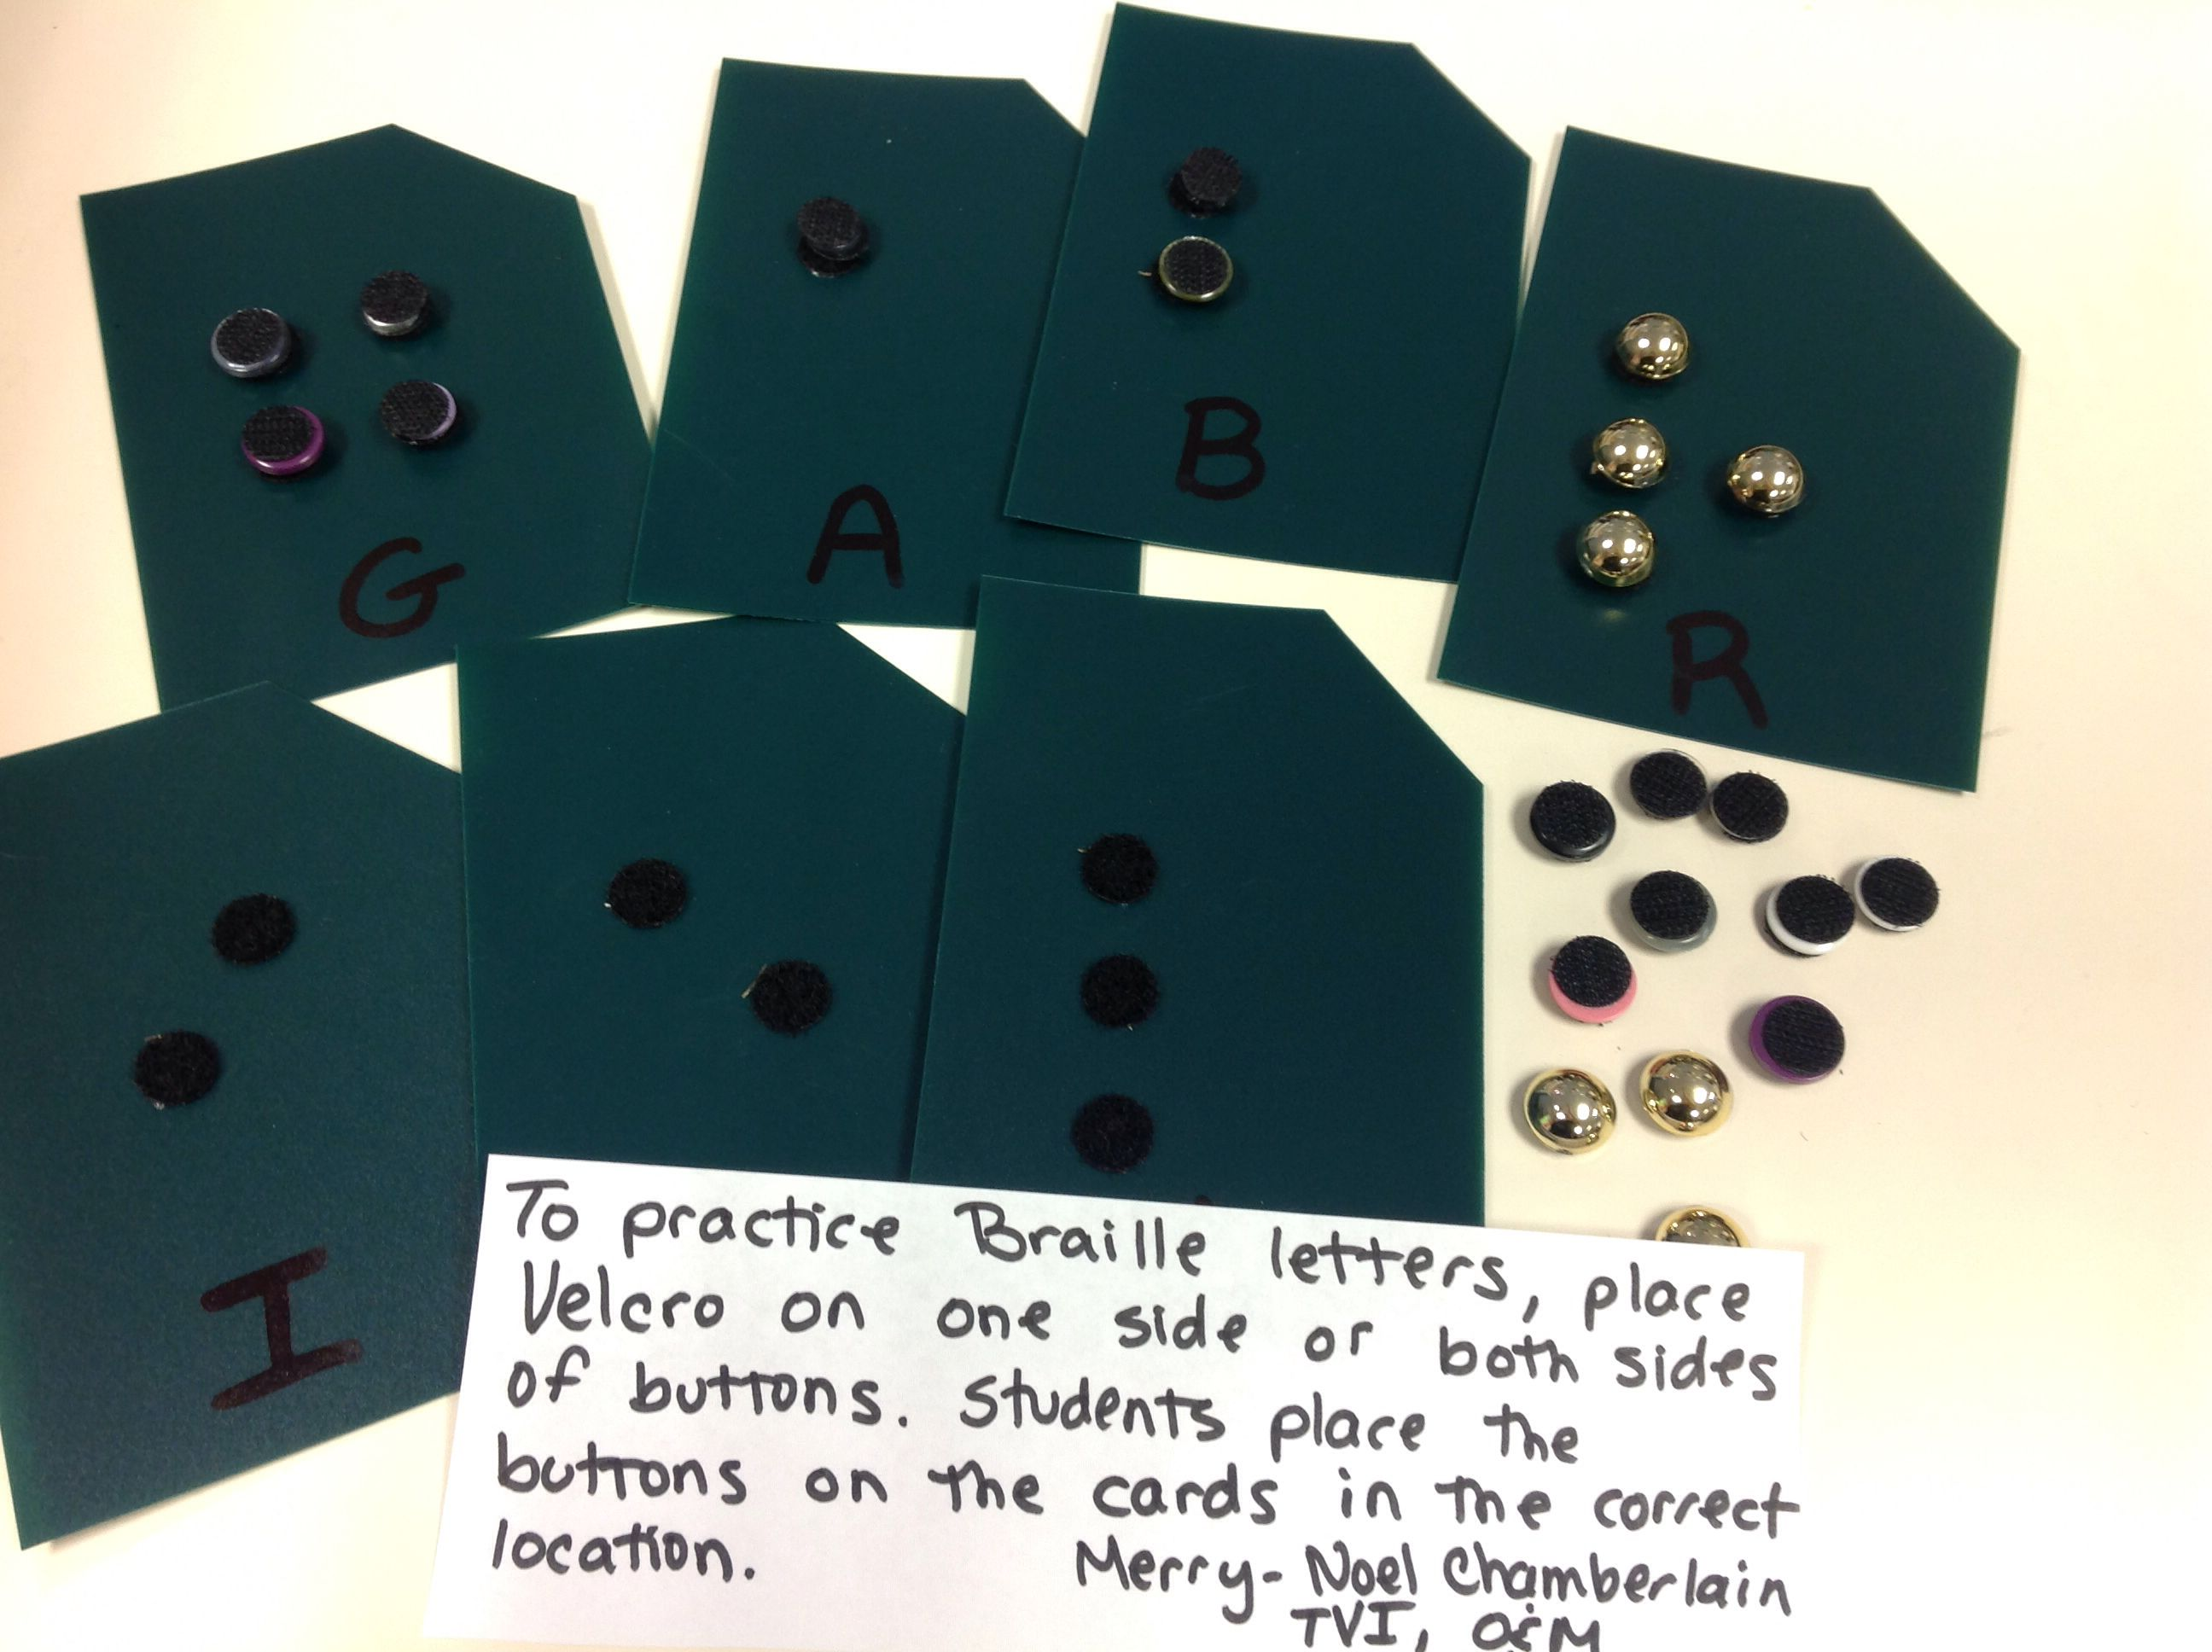 Place Velcro On One Side Or Both Sides Of Buttons To Practice Braille Letters Have The Student